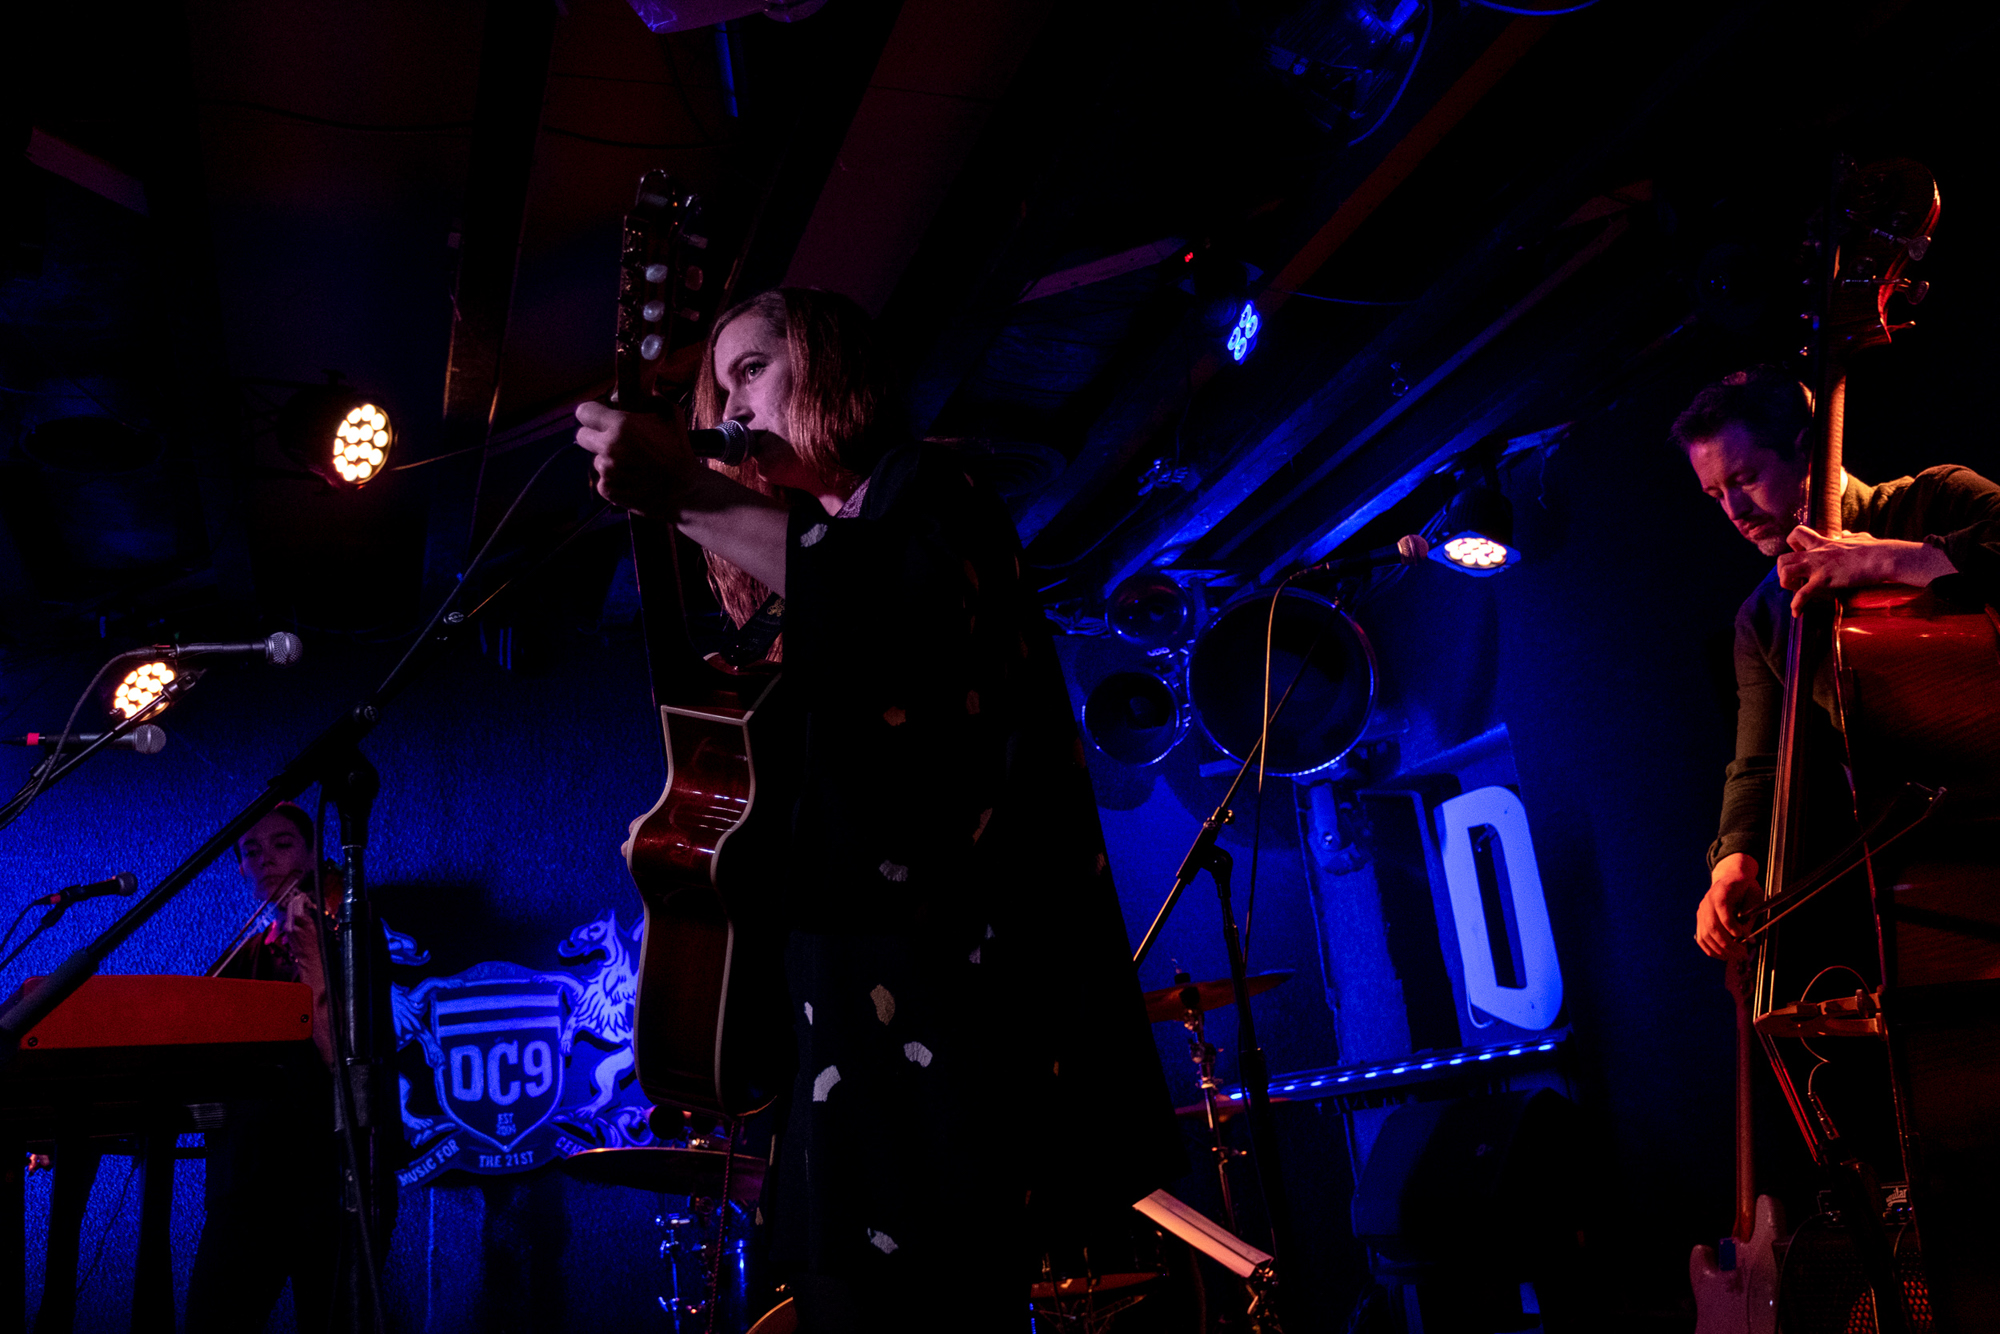 """Laura Gibson performing songs off of her latest LP 'Goners"""" at DC9 in Washington, D.C. - 11/26/18 (Photo by Joel Richard)"""